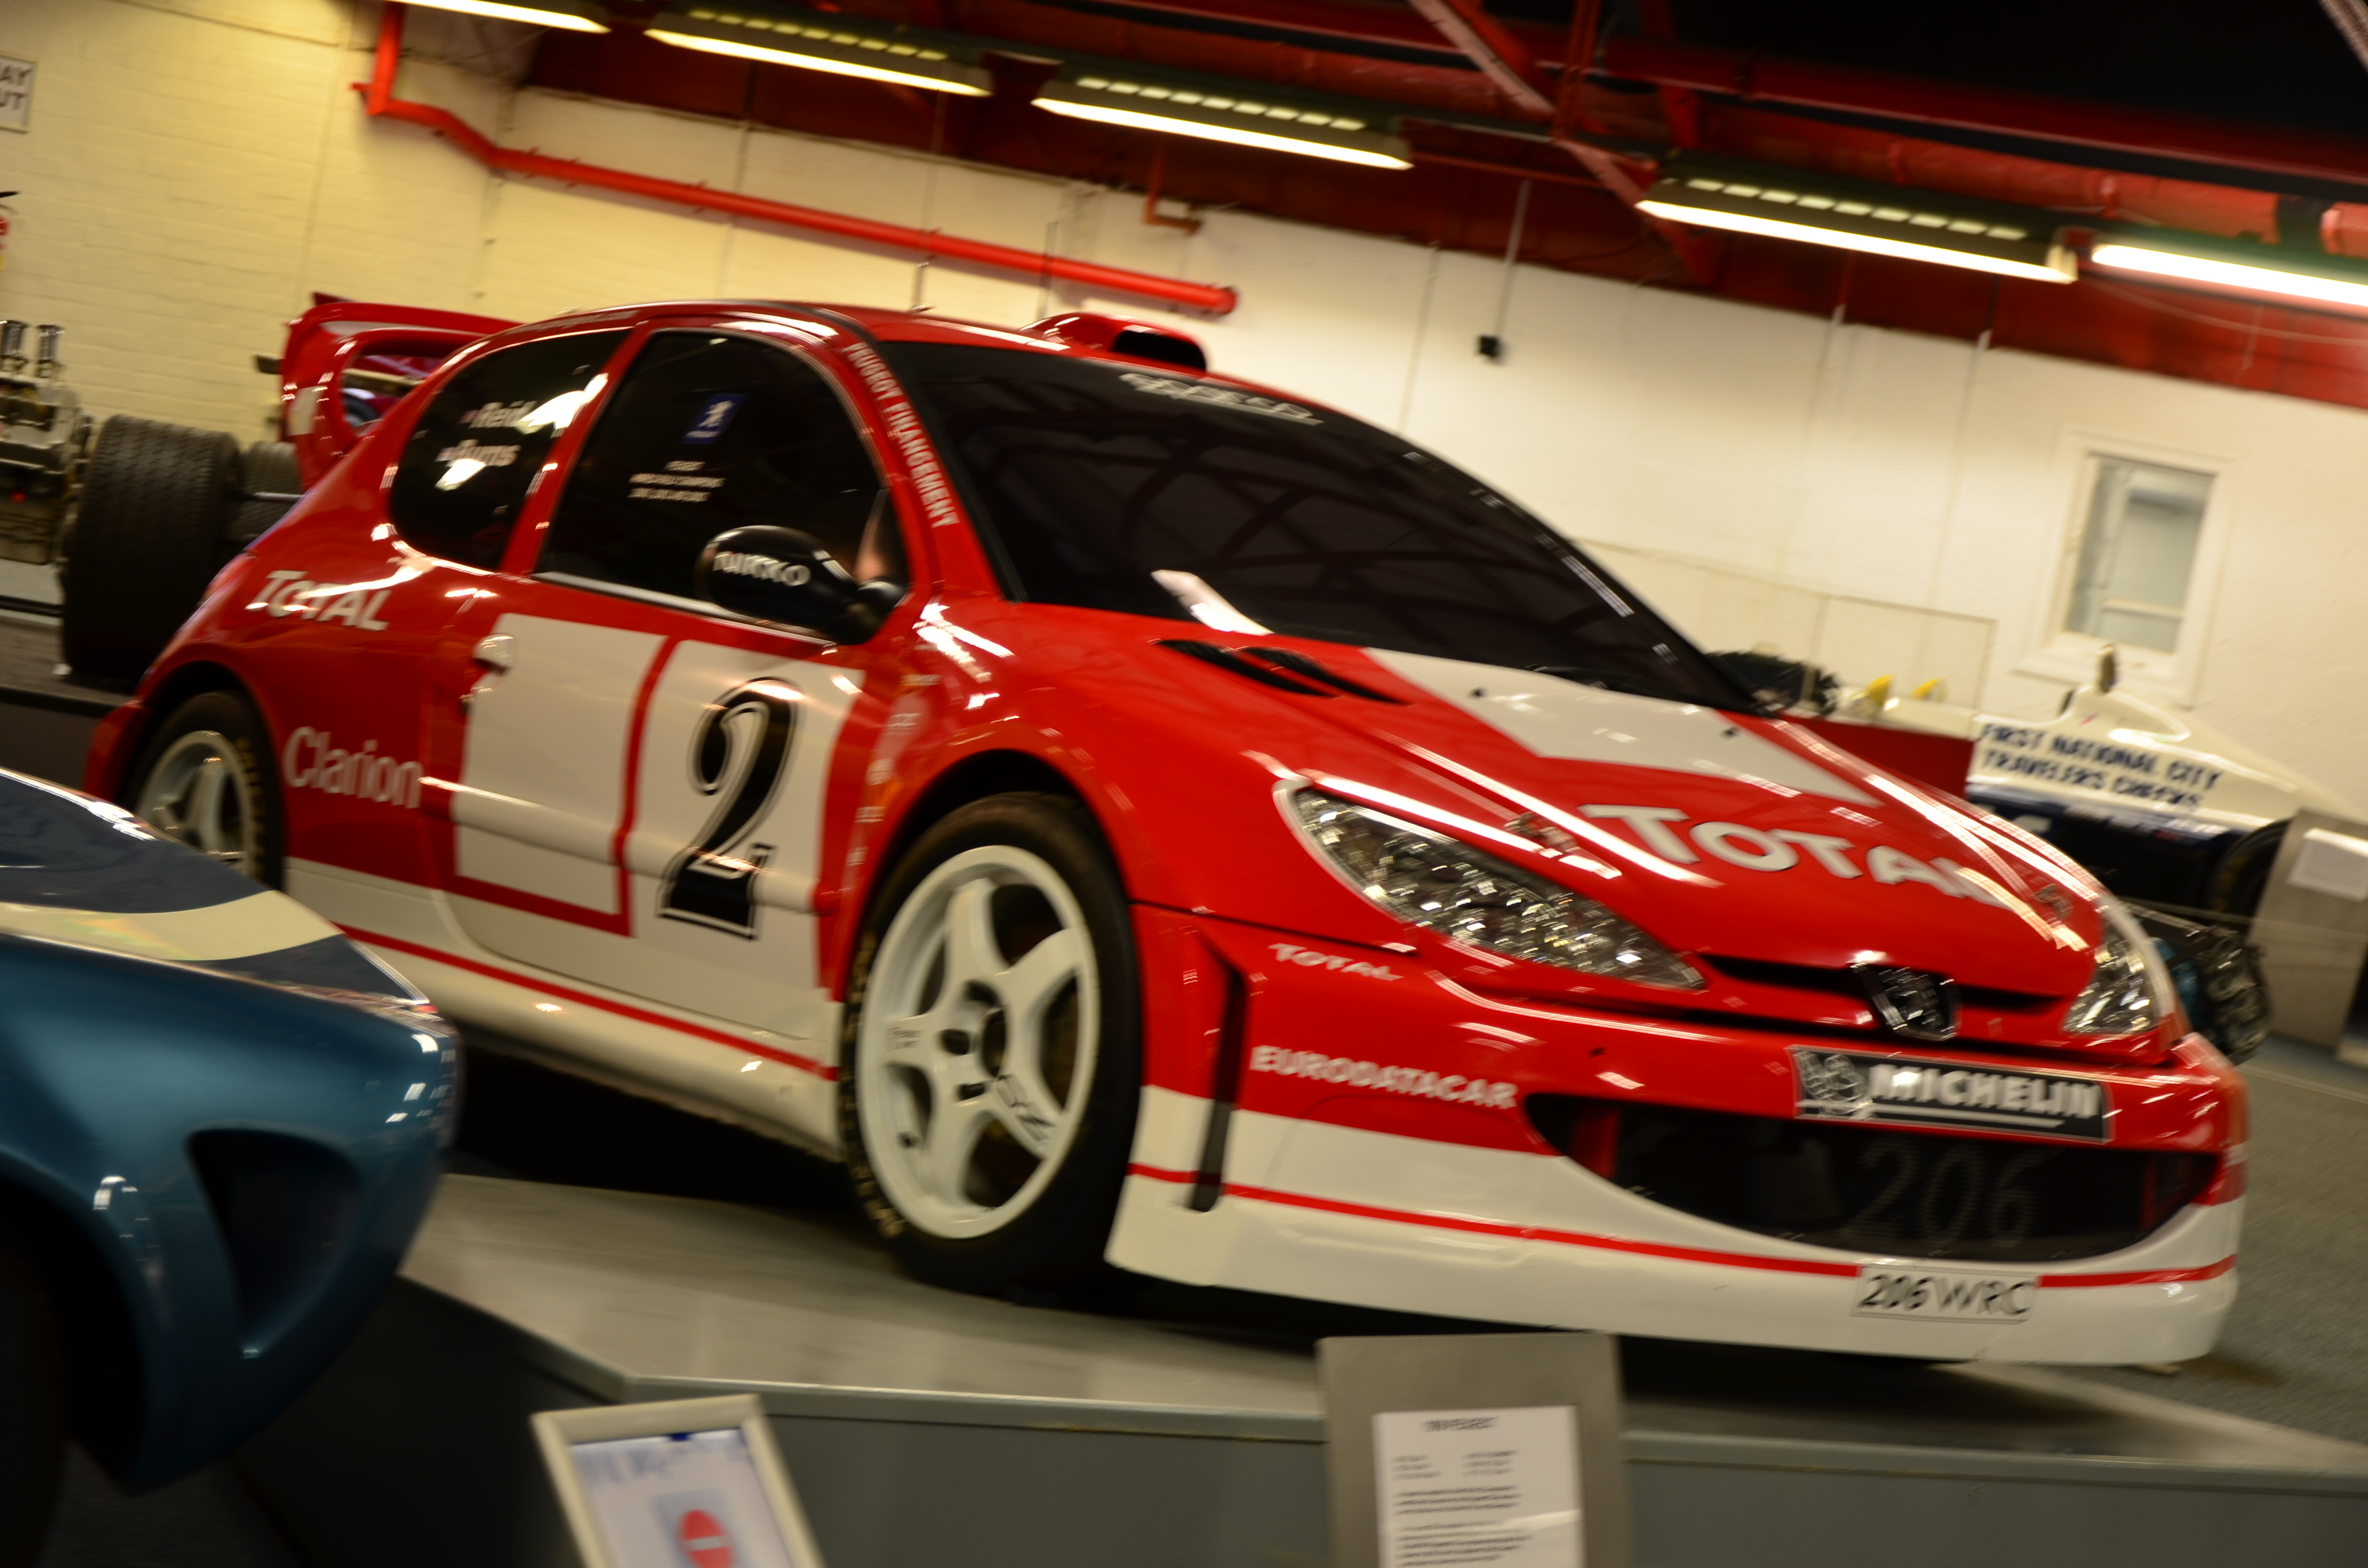 File:Peugeot rally car at Coventry Motor Museum.jpg - Wikimedia Commons